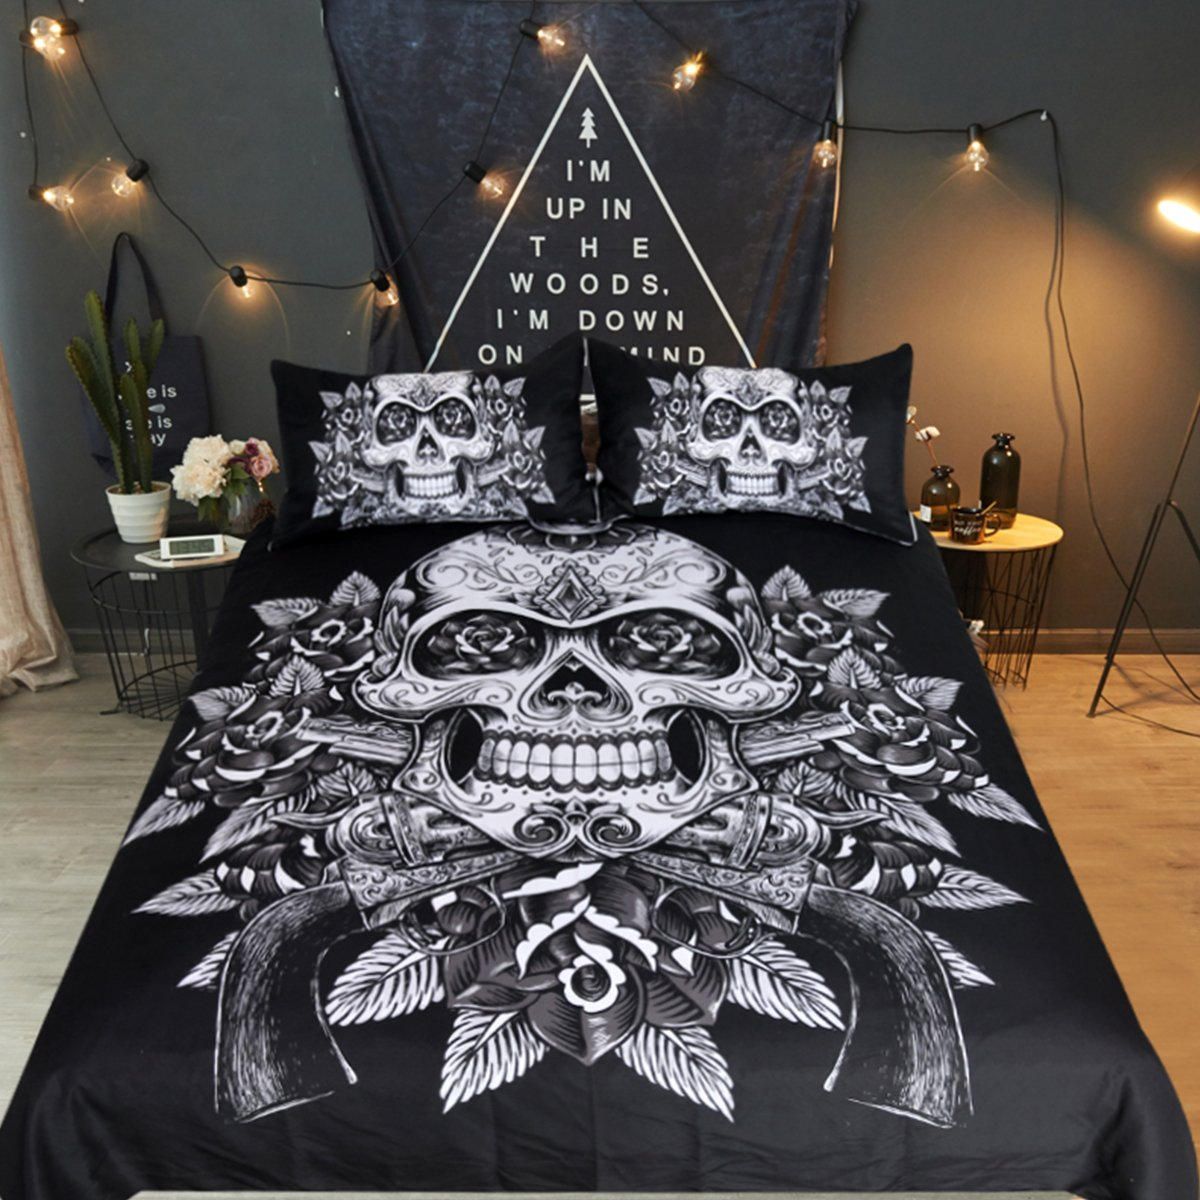 Sleepwish Sugar Skull Bedding Guns and Roses Funny Skull Duvet Cover Set 3 Piece Skeleton Flower Goth Bed Cover (Full, Black and White)